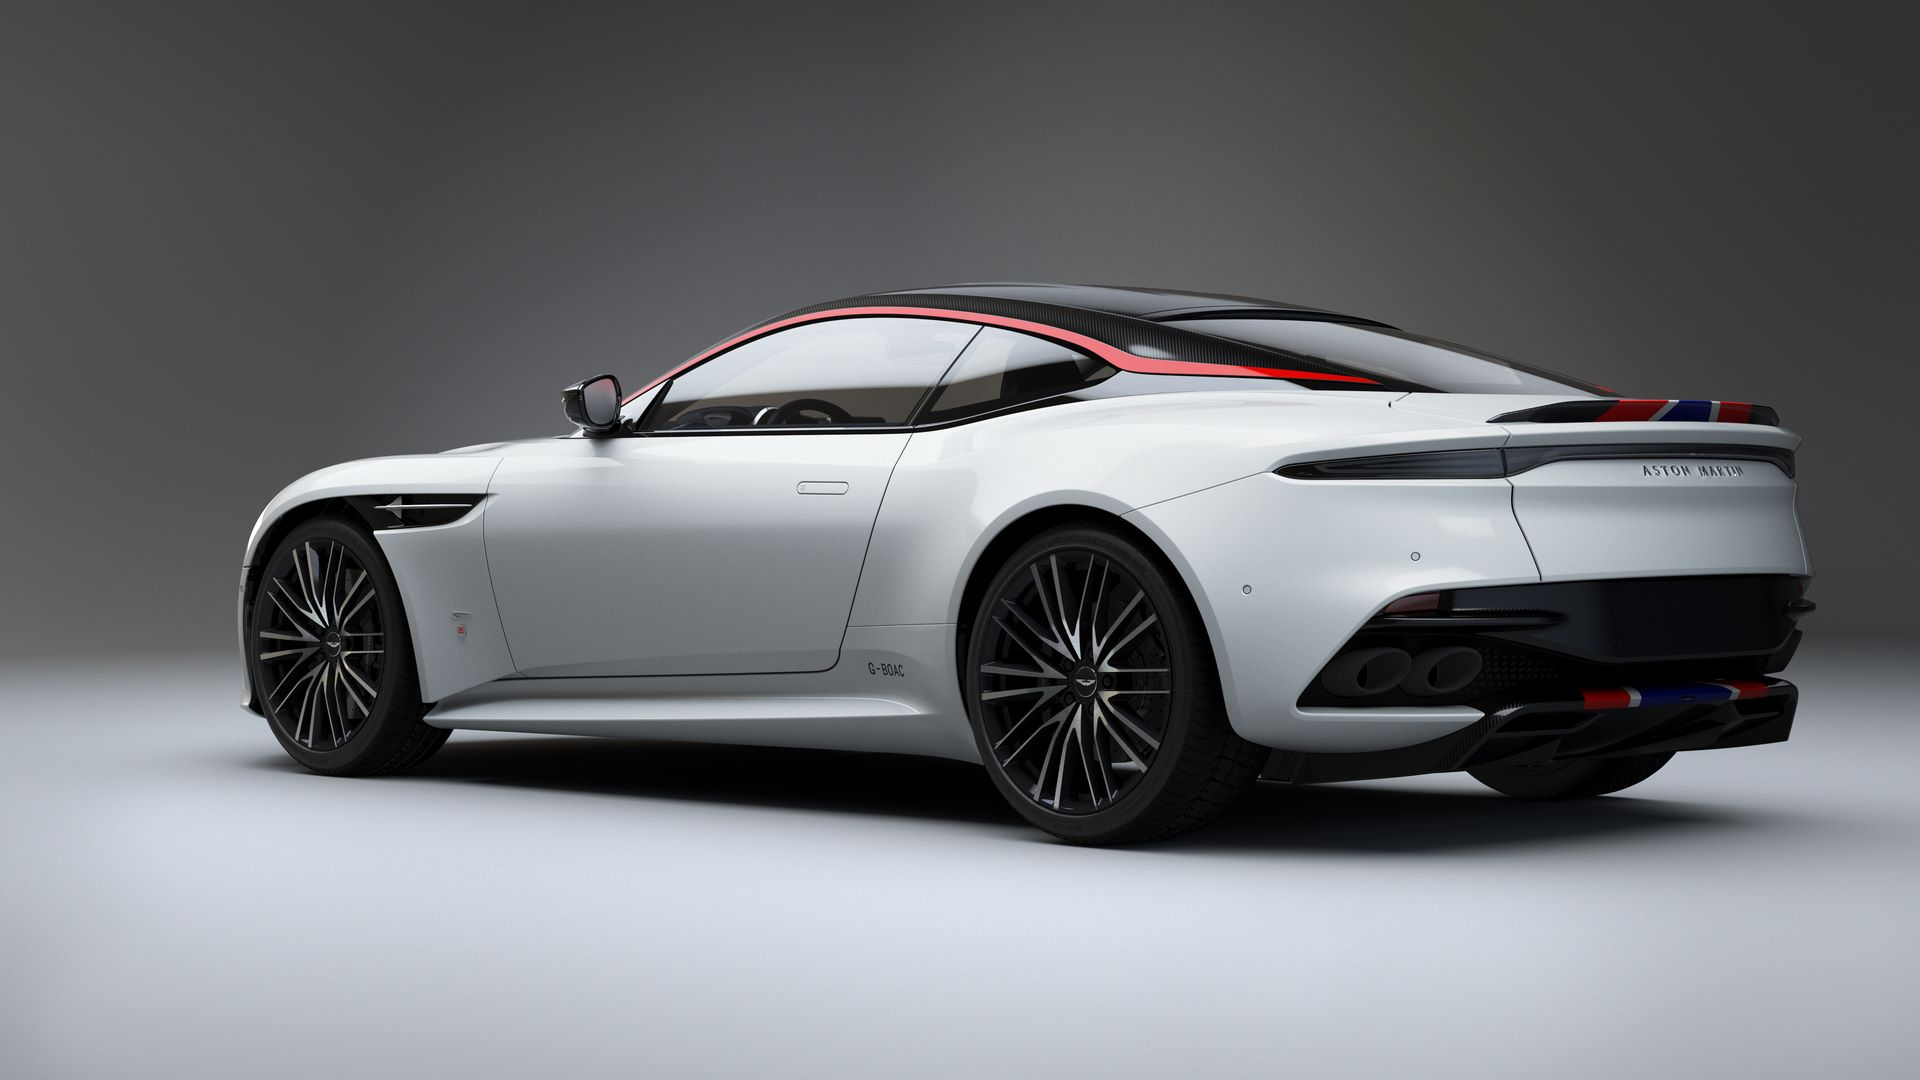 Aston-Martin-DBS-Superleggera-Concorde-Edition_09